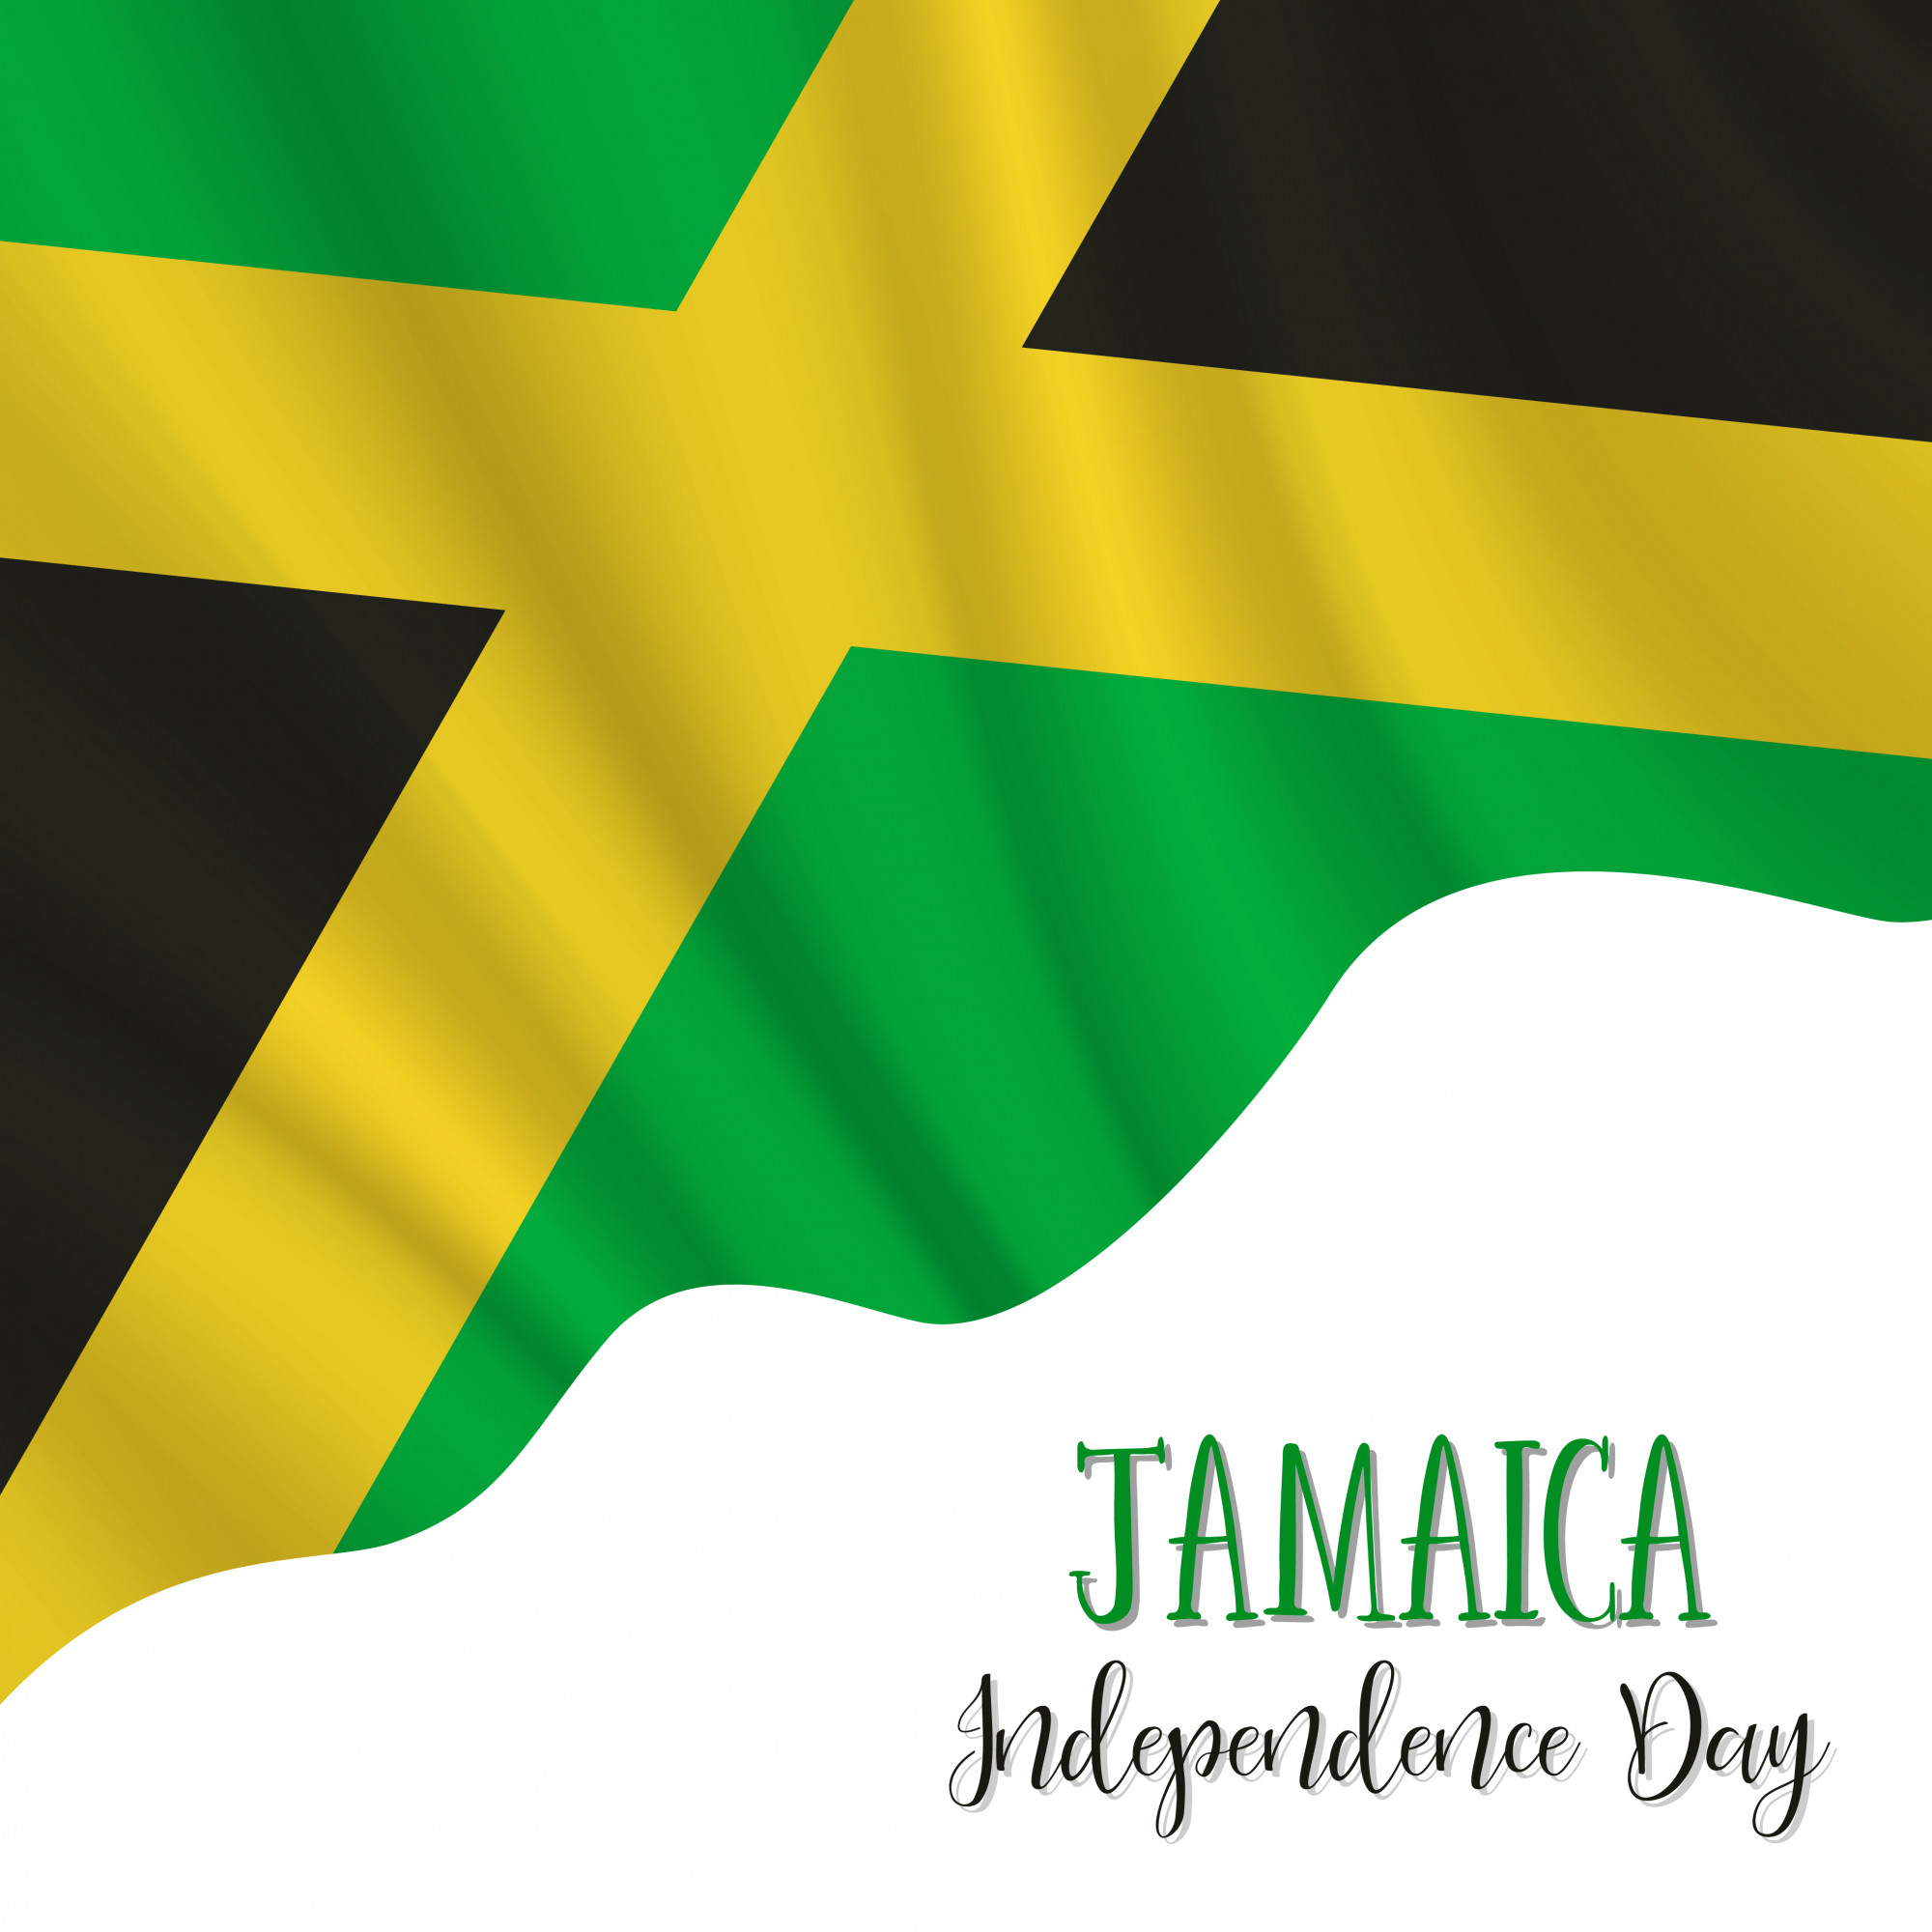 Jamaica Independence Day background